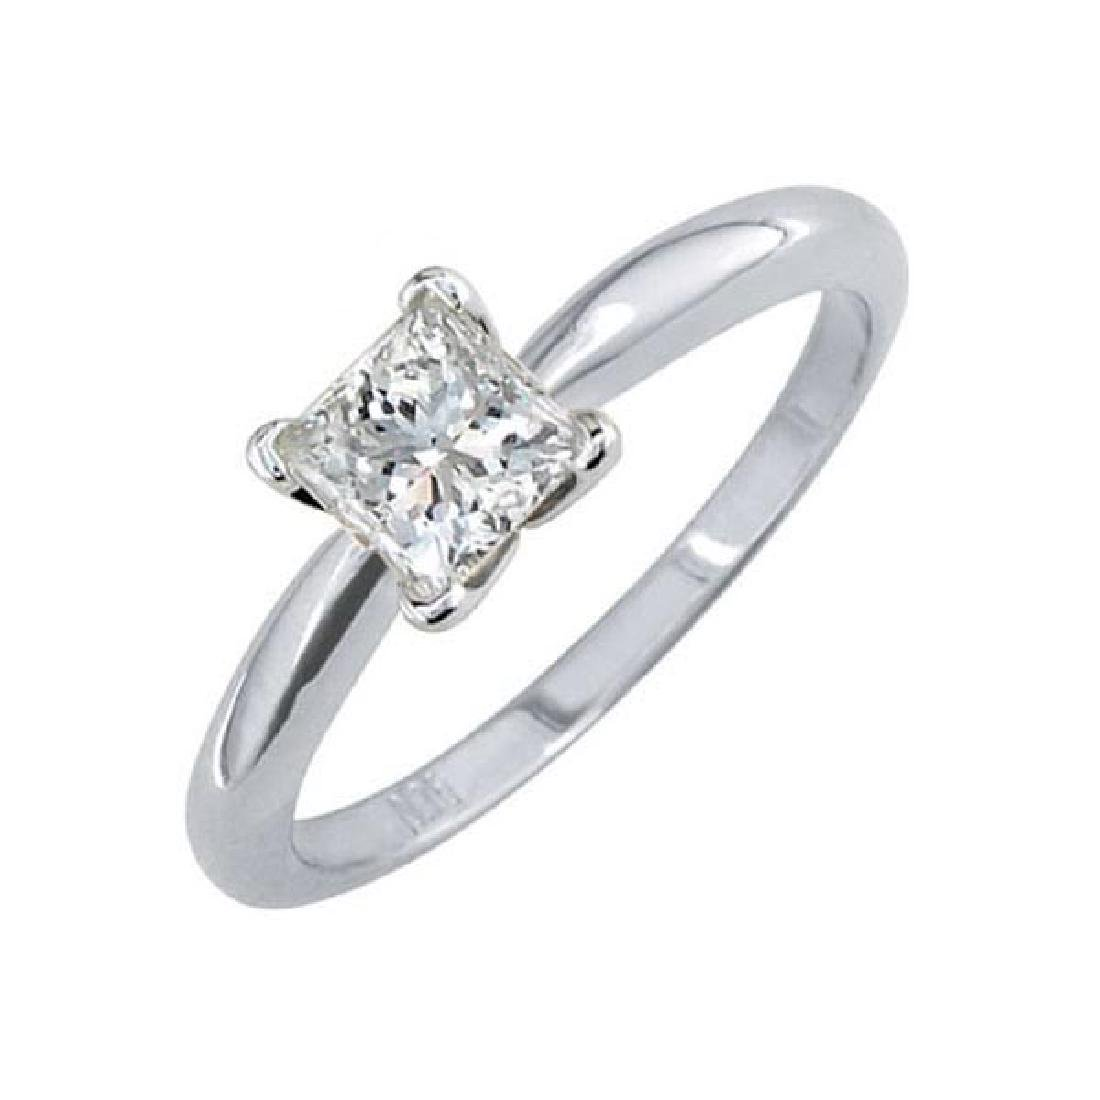 Certified 0.26 CTW Princess Diamond Solitaire 14k Ring